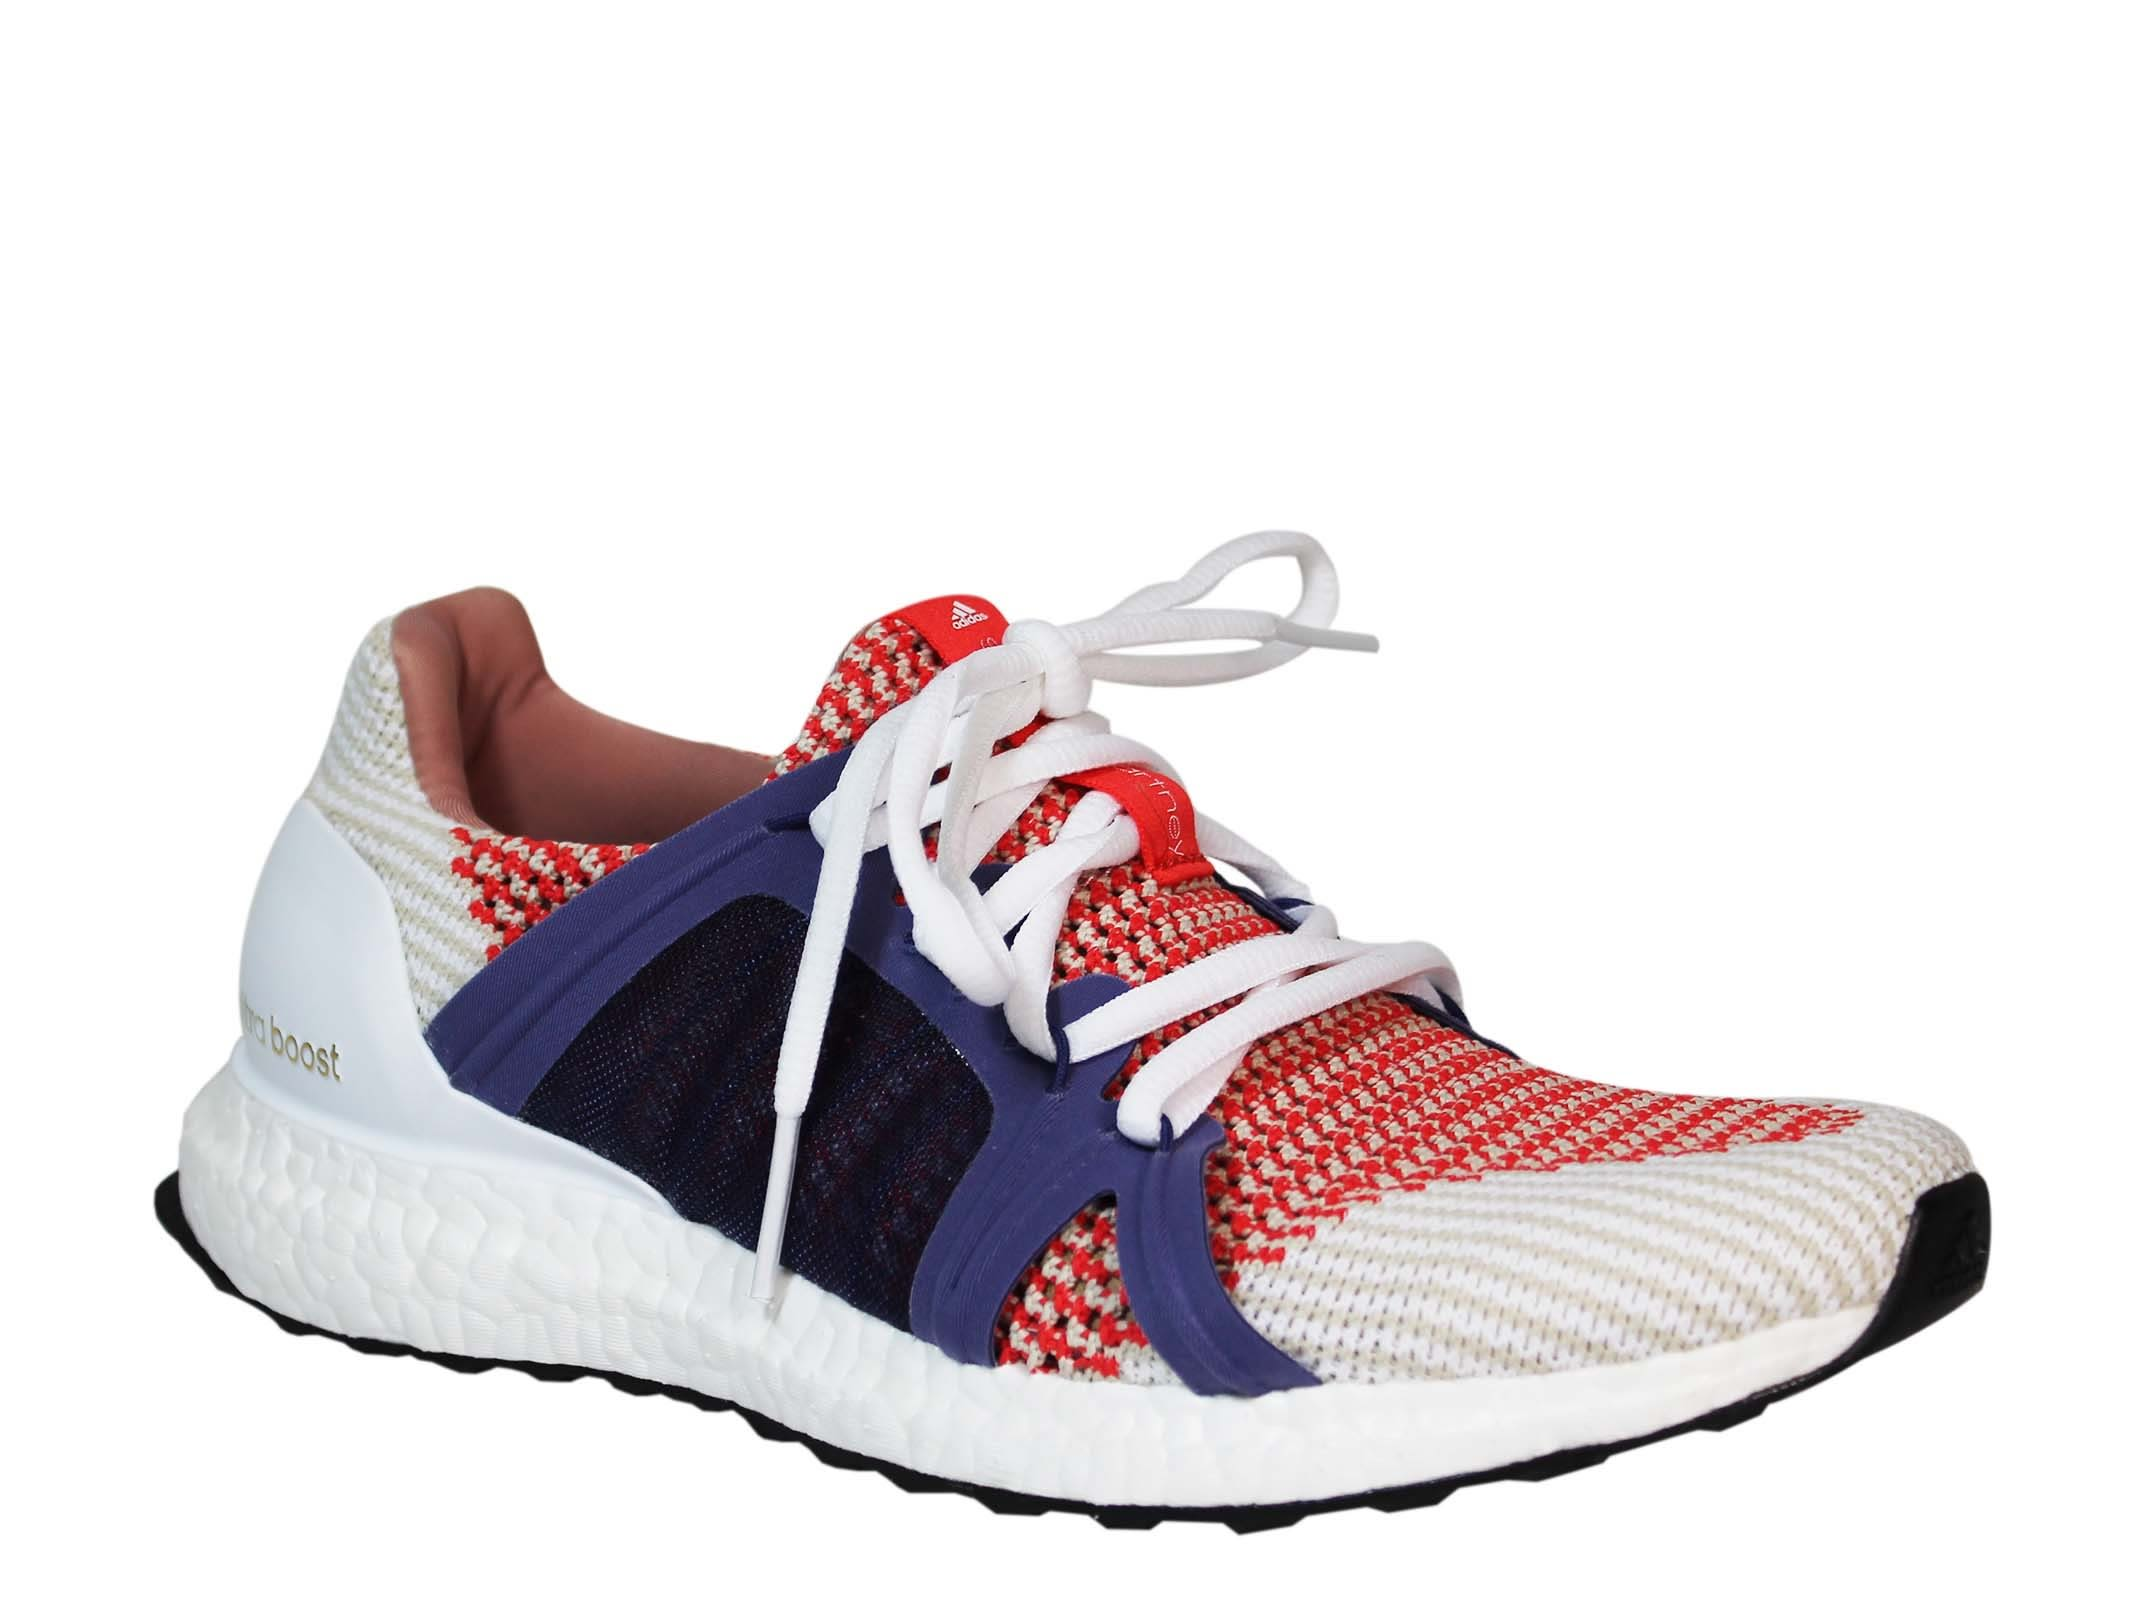 adidas Bright Red Ultra Boost Low Sneakers Wiki For Sale S43rzm